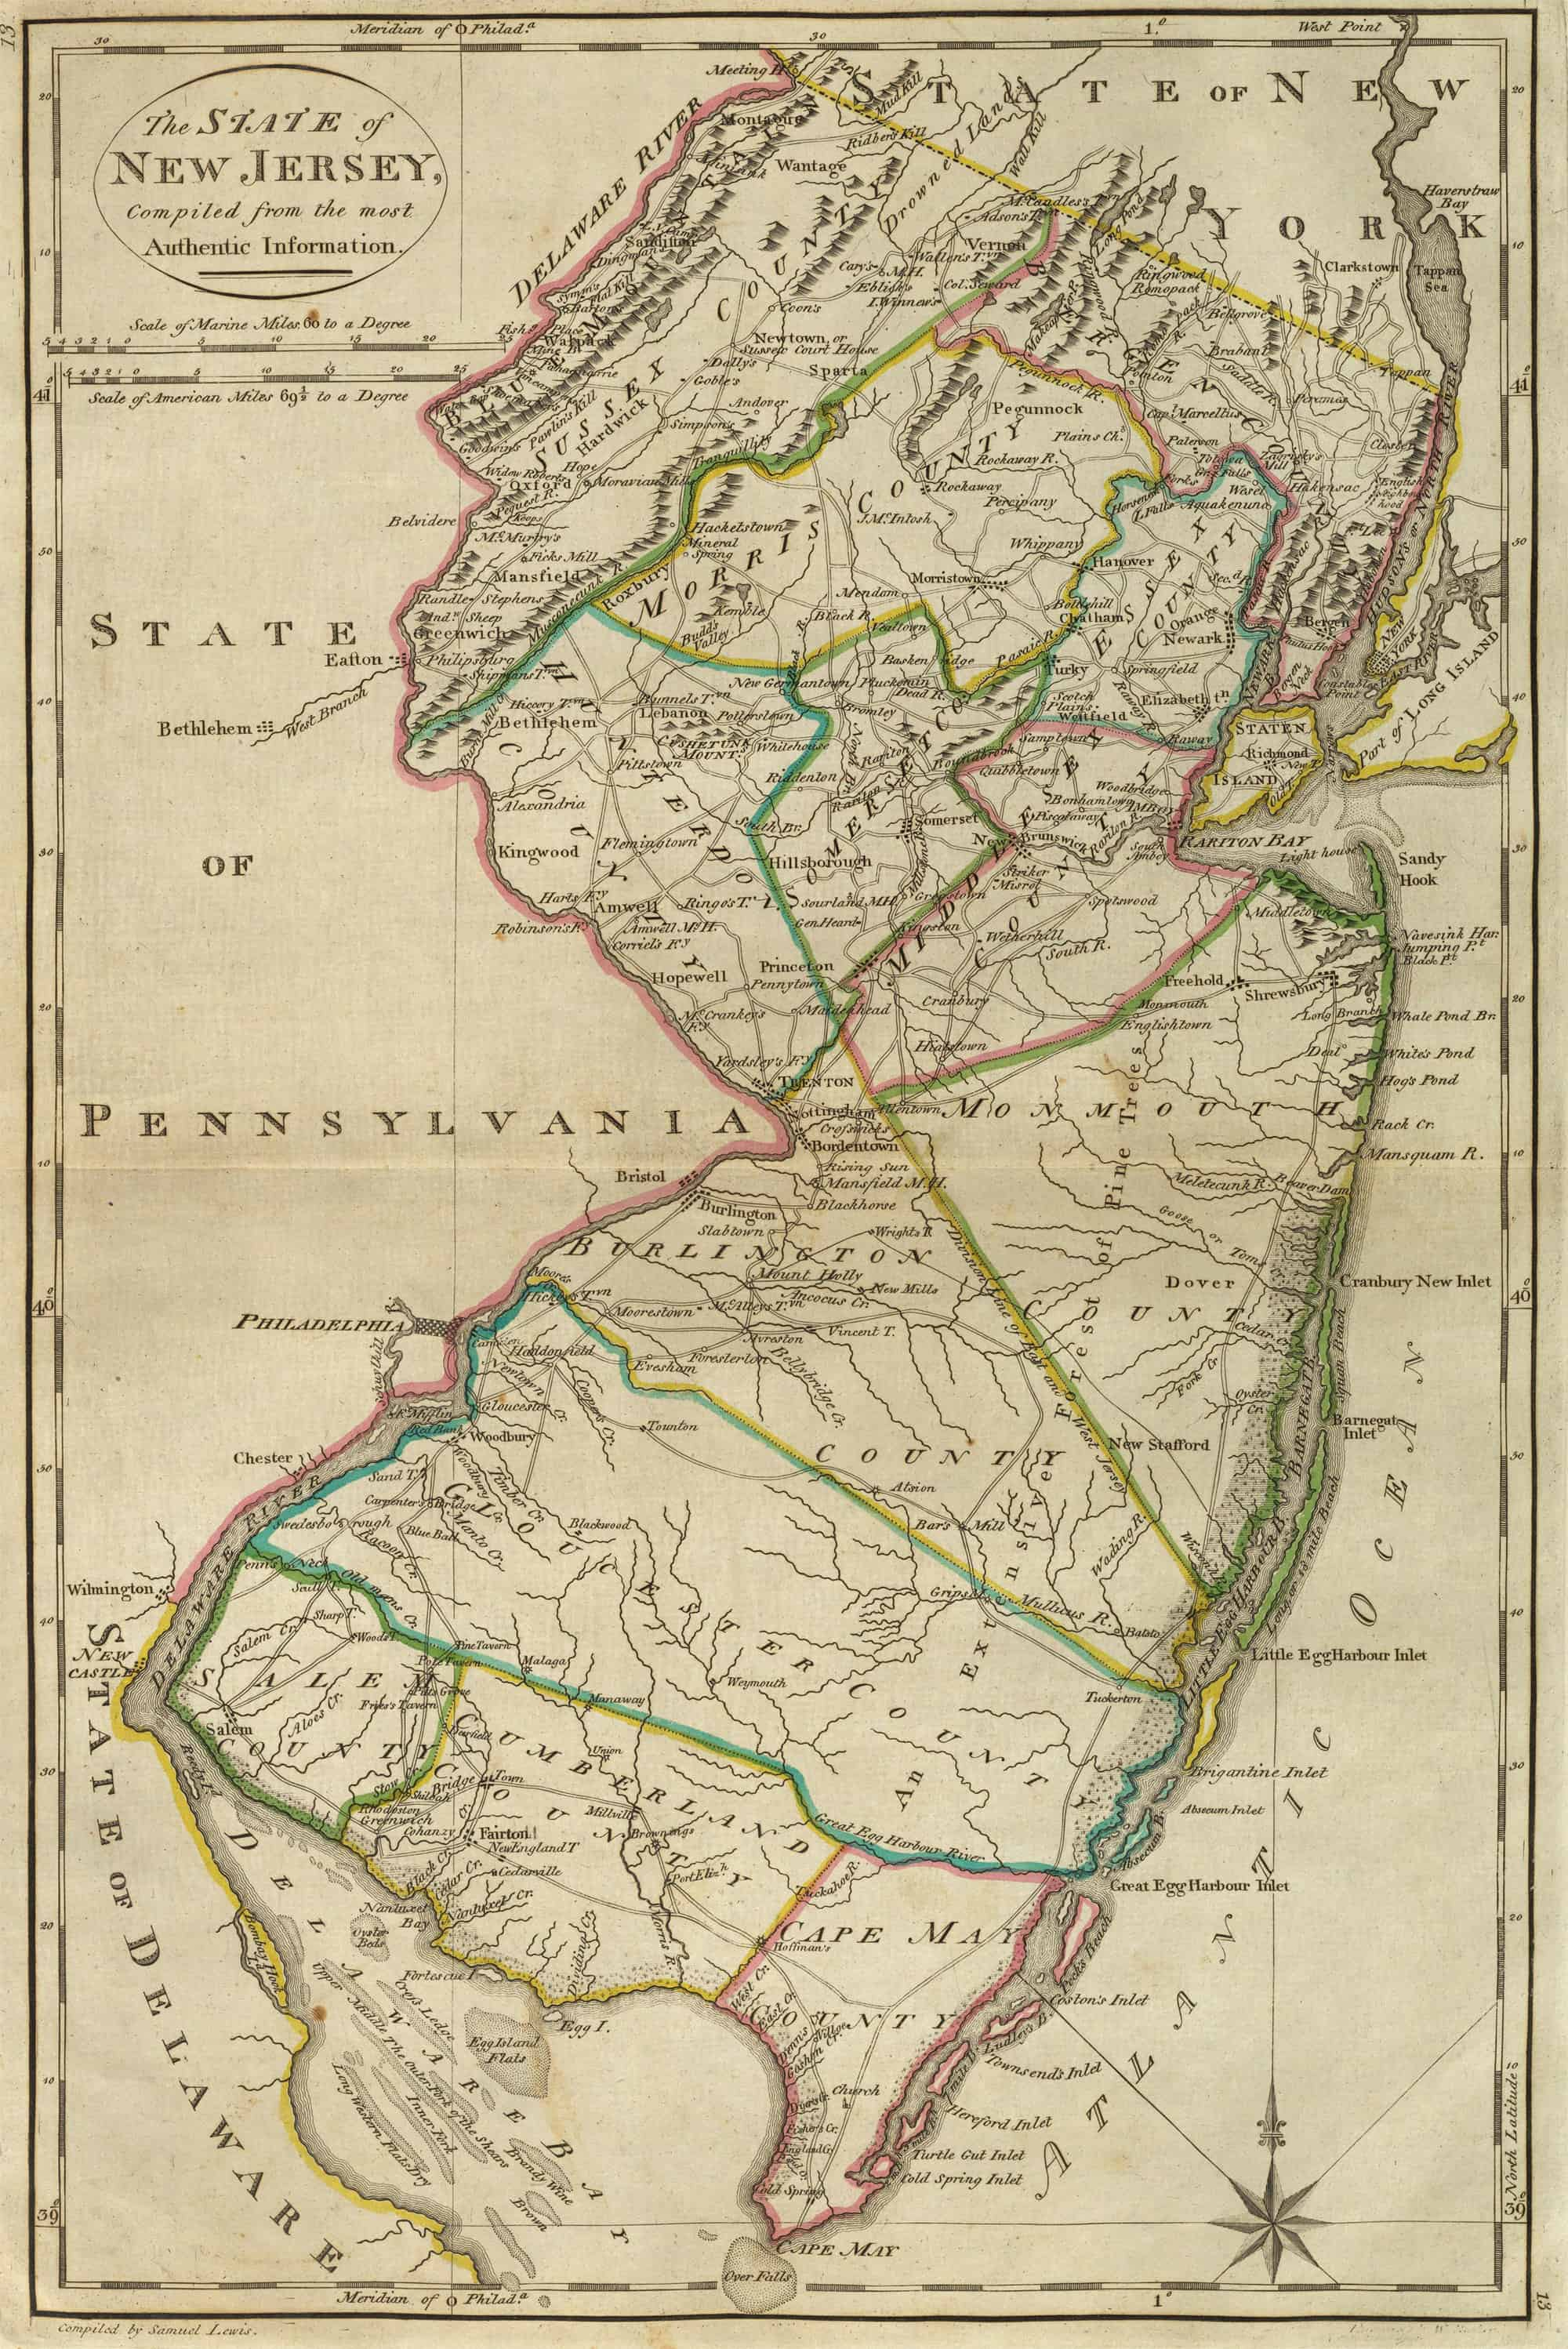 Old Historical City, County and State Maps of New Jersey